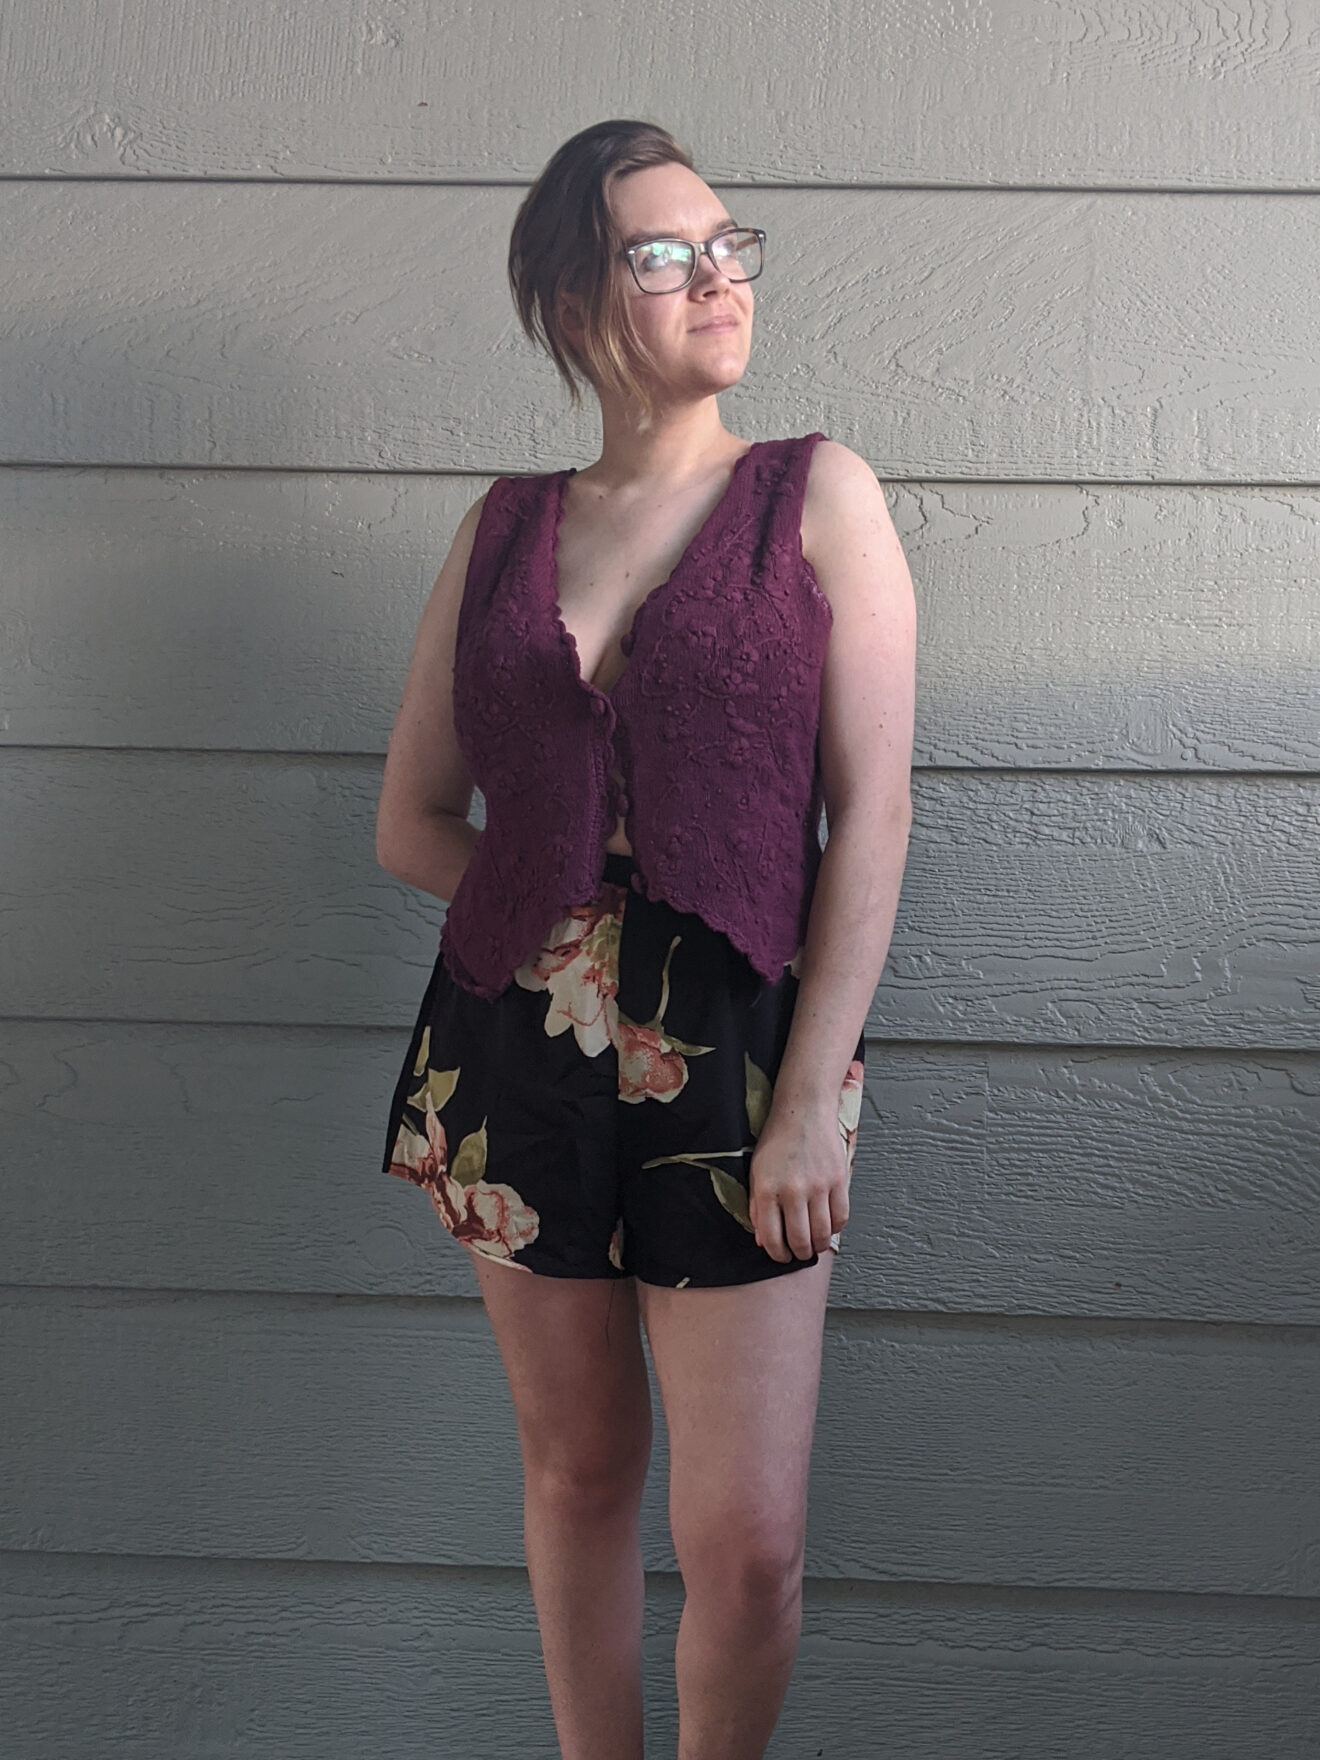 It Isnt Love If Its Selfish Alissa Ackerman Story Behind The Cloth fashion blog post Summer Mori Kei gothic bohemian witchy romantic outfit Heartbreak breakup depression love loss 6